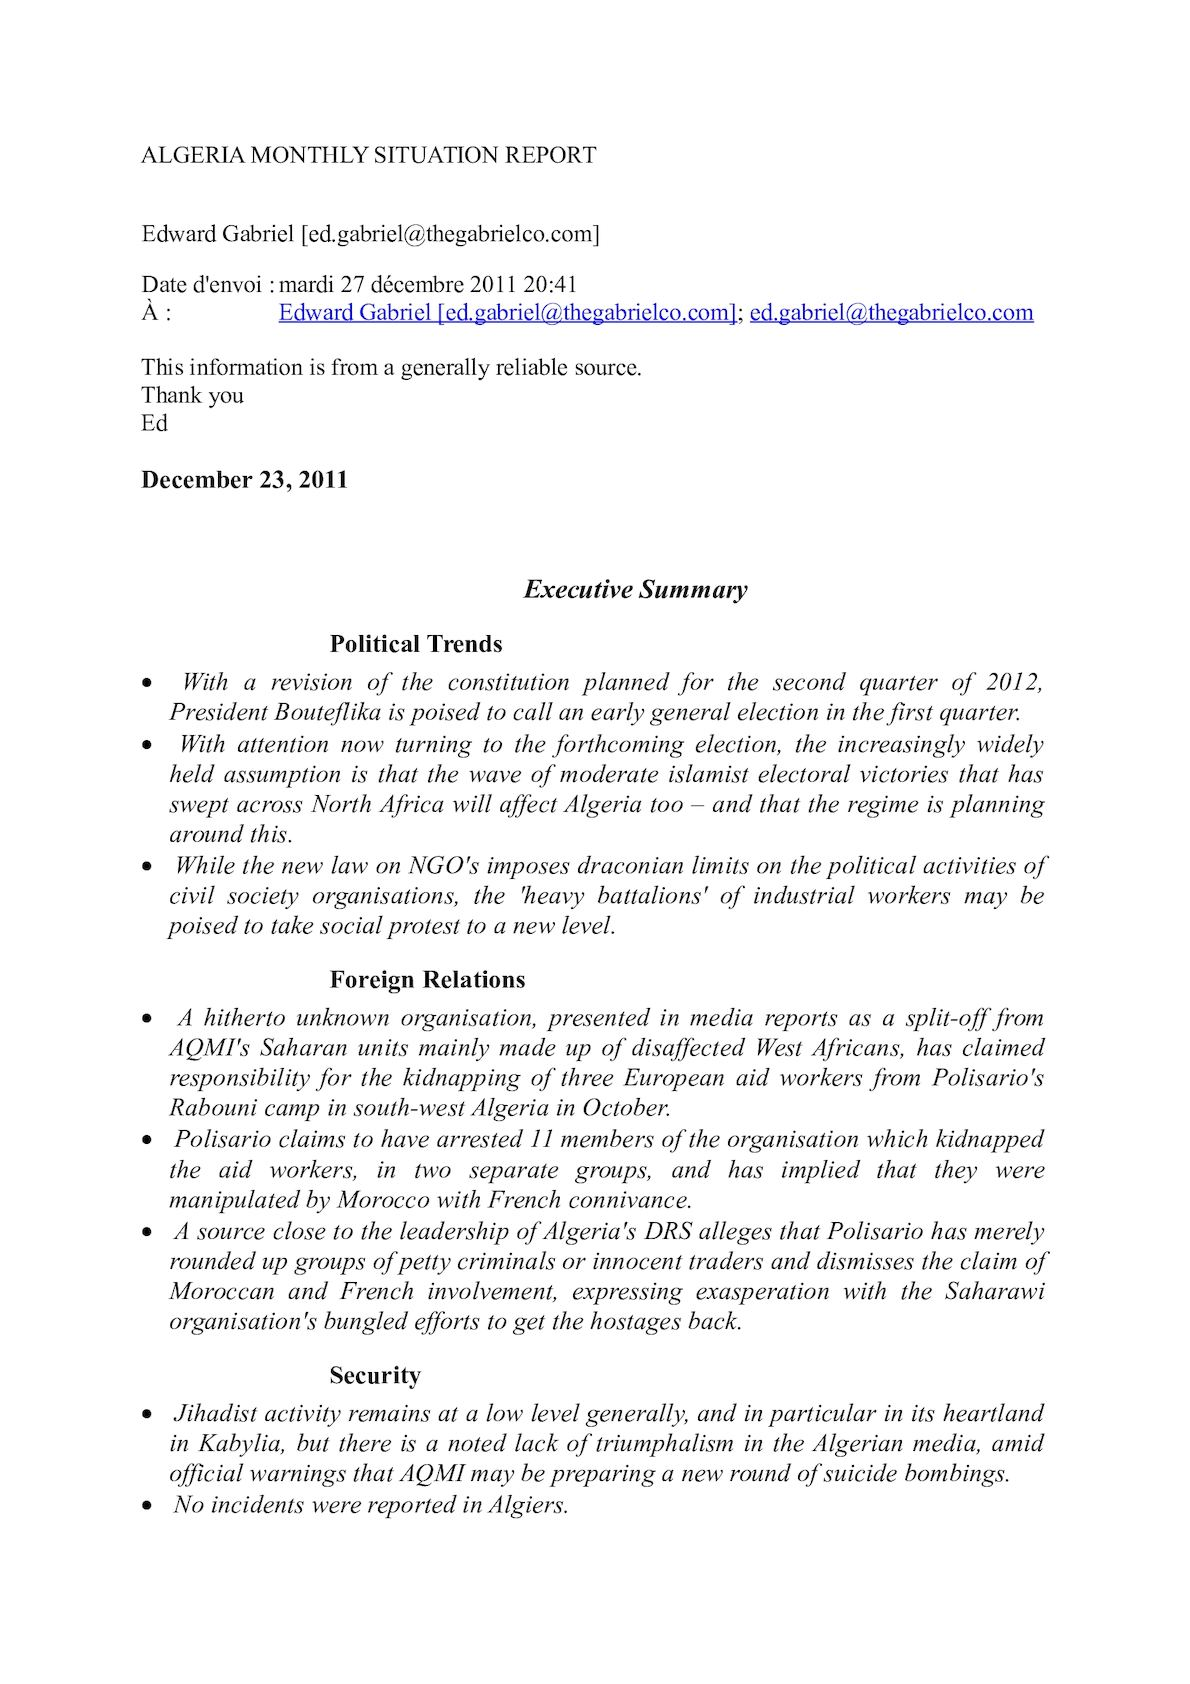 ALGERIA MONTHLY SITUATION REPORT